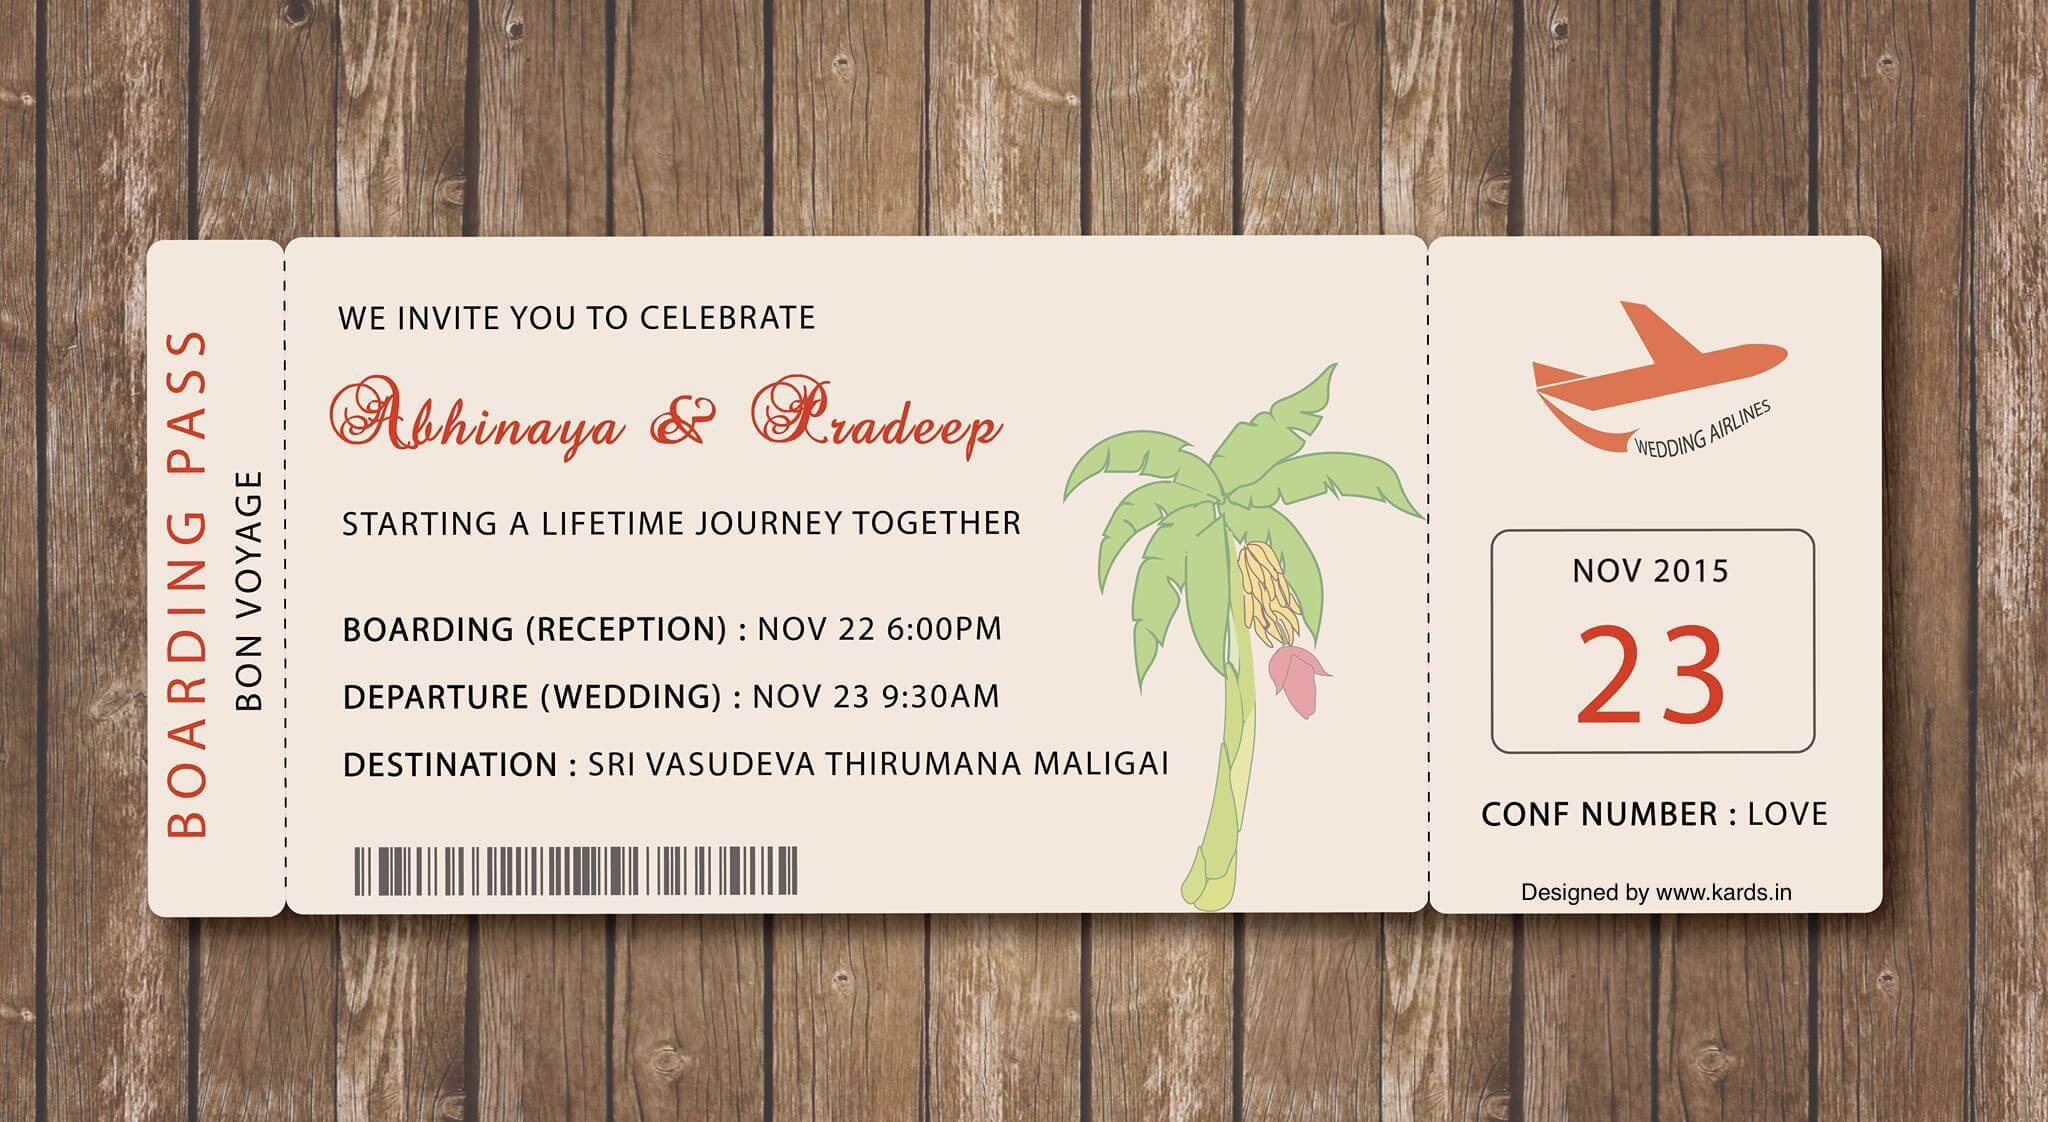 The Best 10 Card Websites To Get Your Wedding Invitation Card Done |